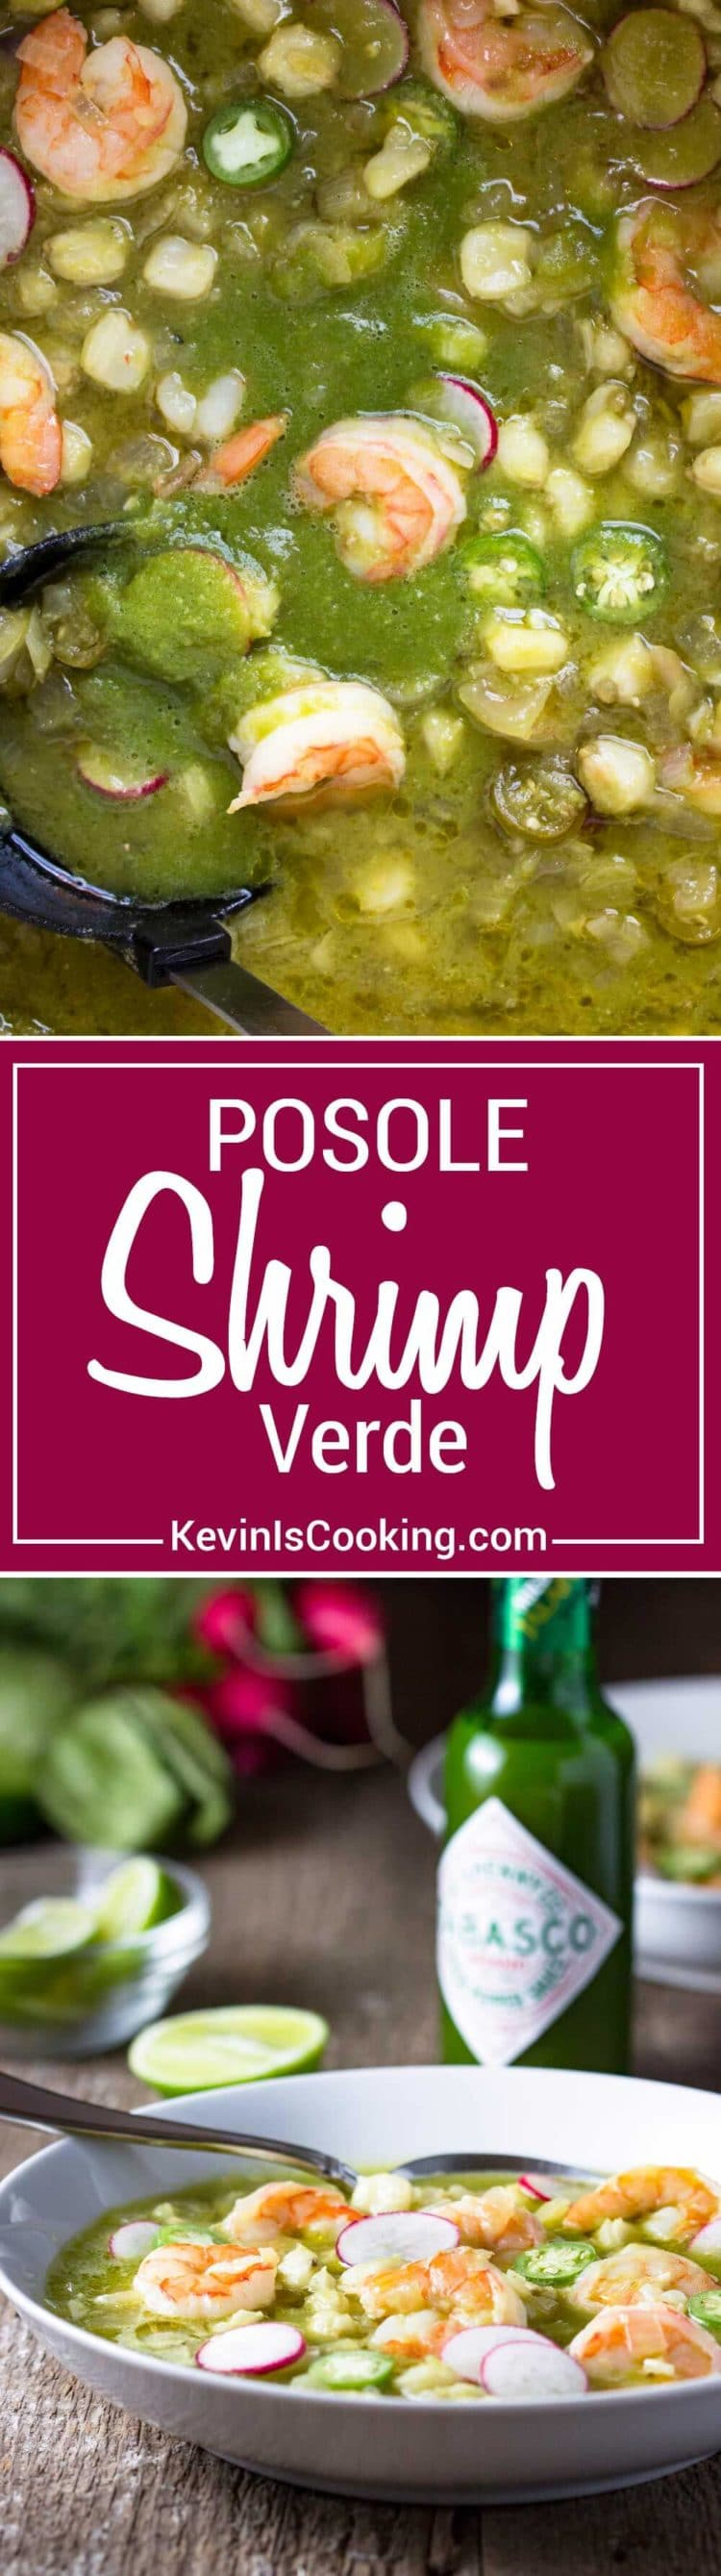 This Shrimp Posole Verde starts with a traditional, hearty Mexican soup that eats like a stew, and includes hominy, chiles and substitutes shrimp for pork.